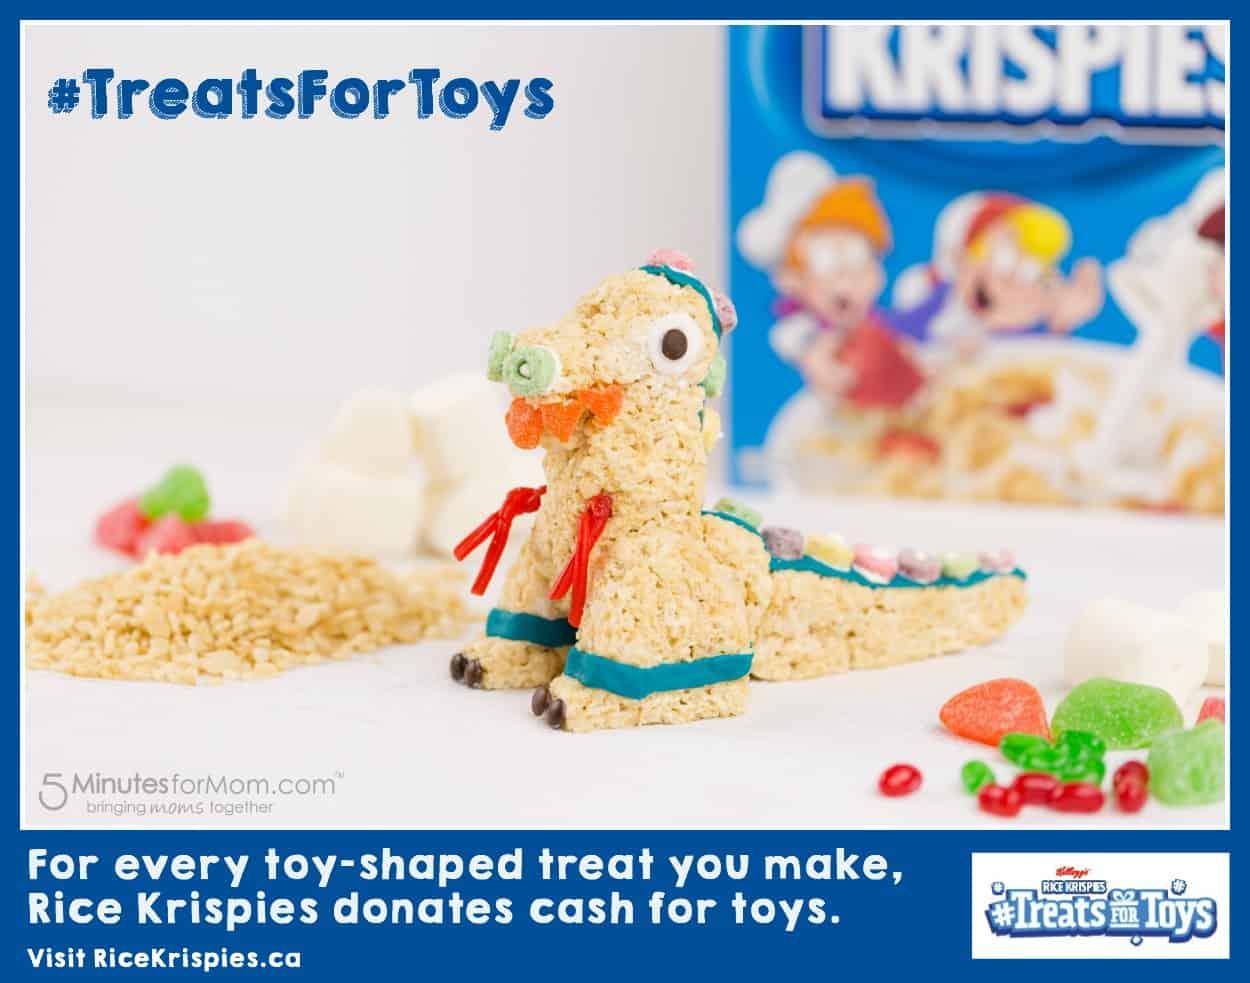 Rice Krispies Treats for Toys - Toy Shaped Treats